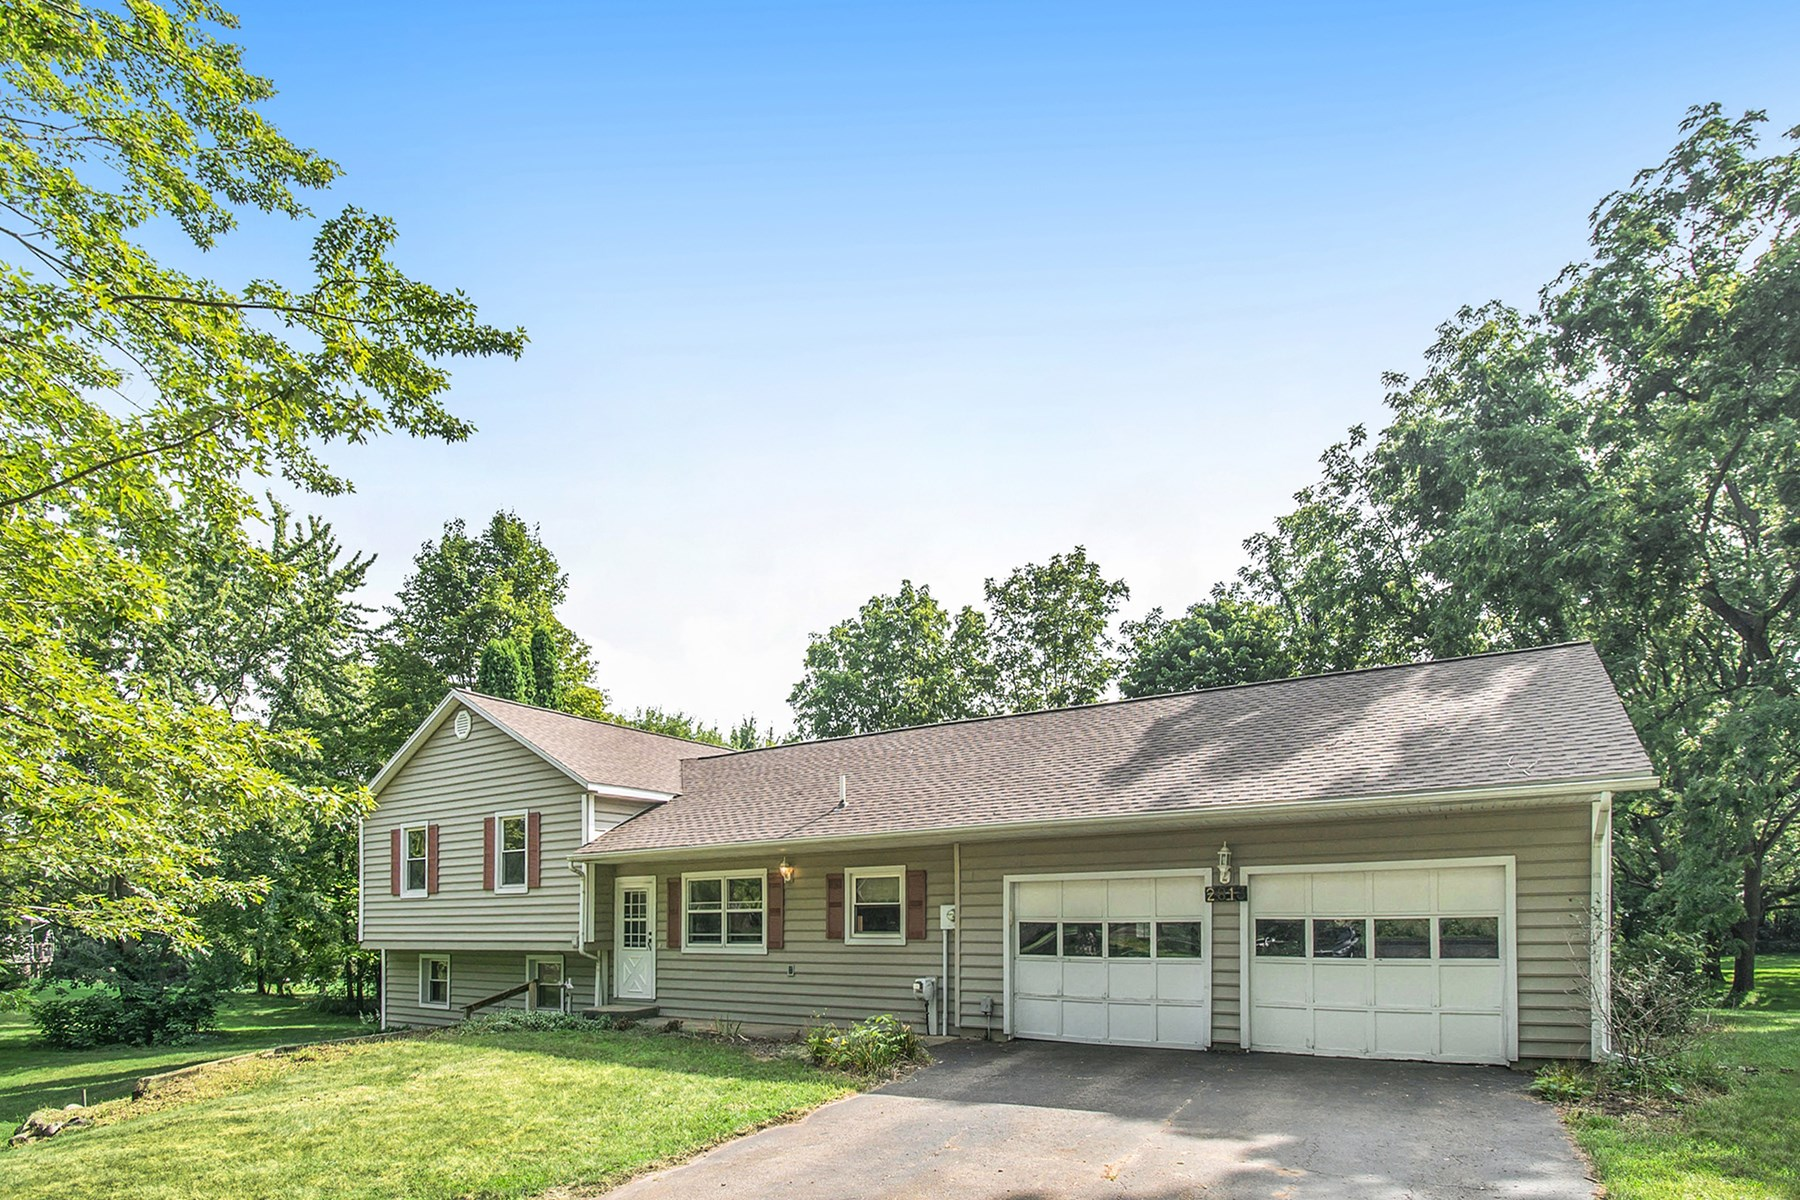 Country Home W/ Acreage For Sale in Galesburg, MI!